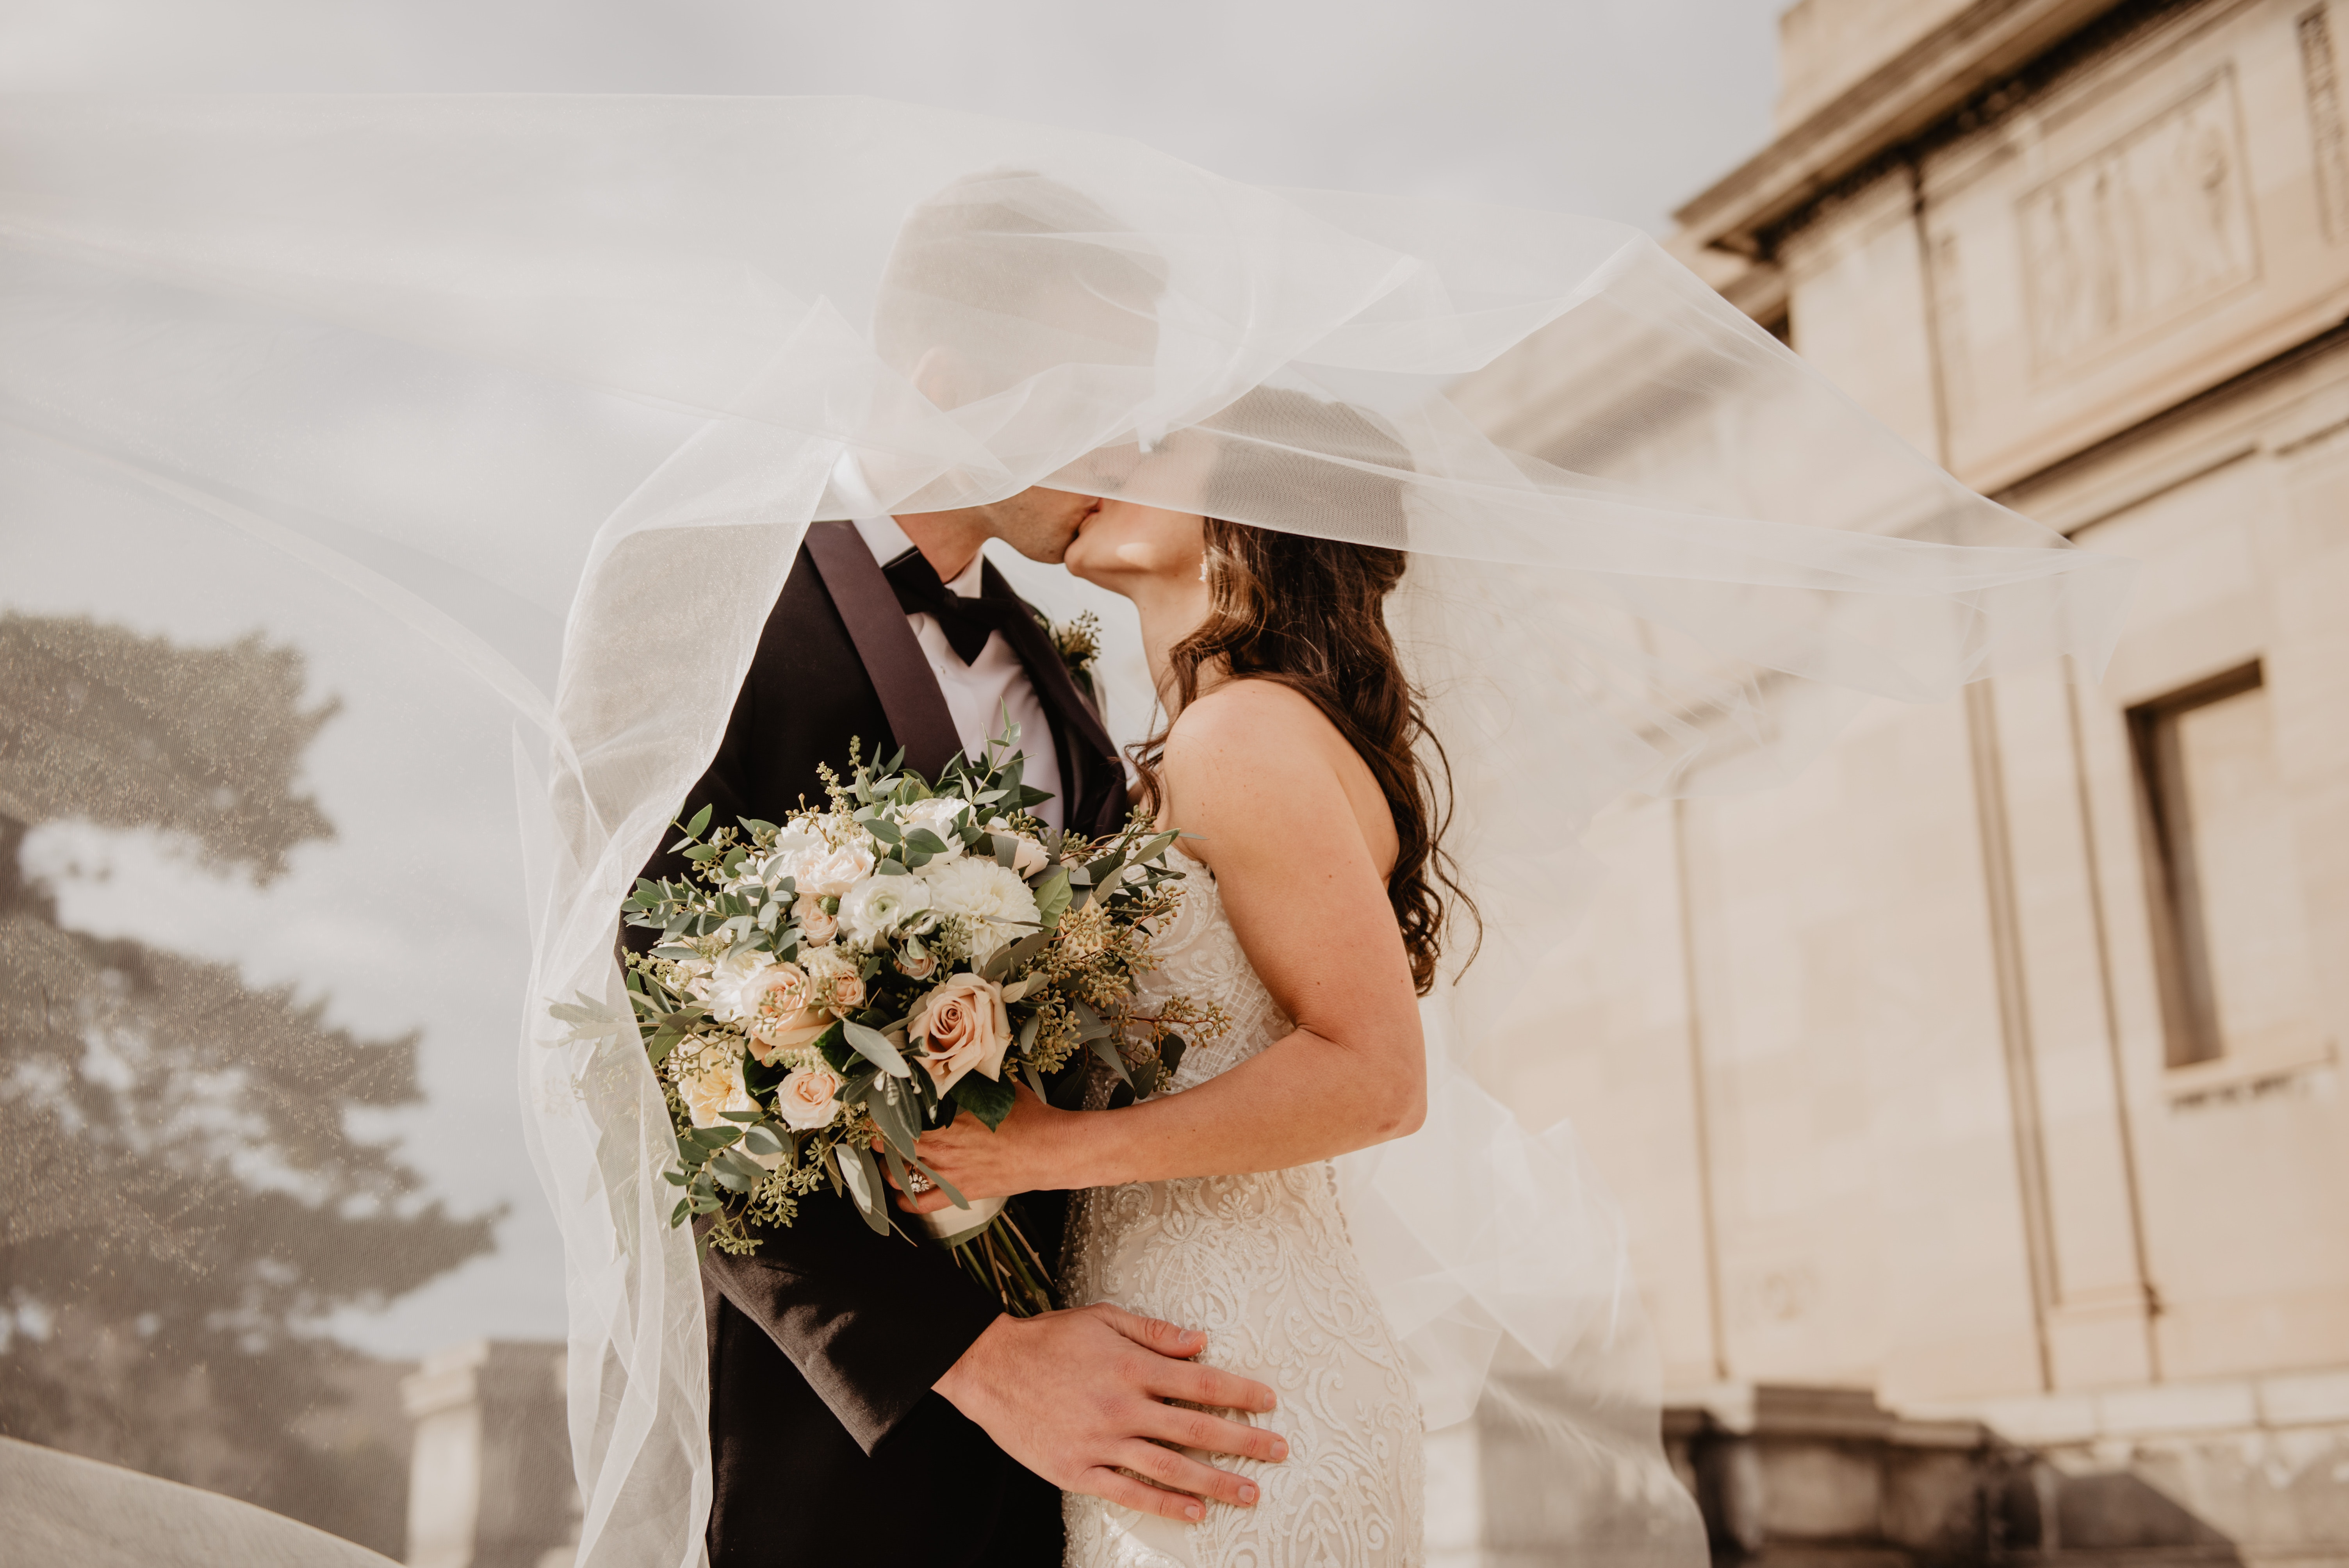 I Want To Marry A US Citizen – What Are My Options?